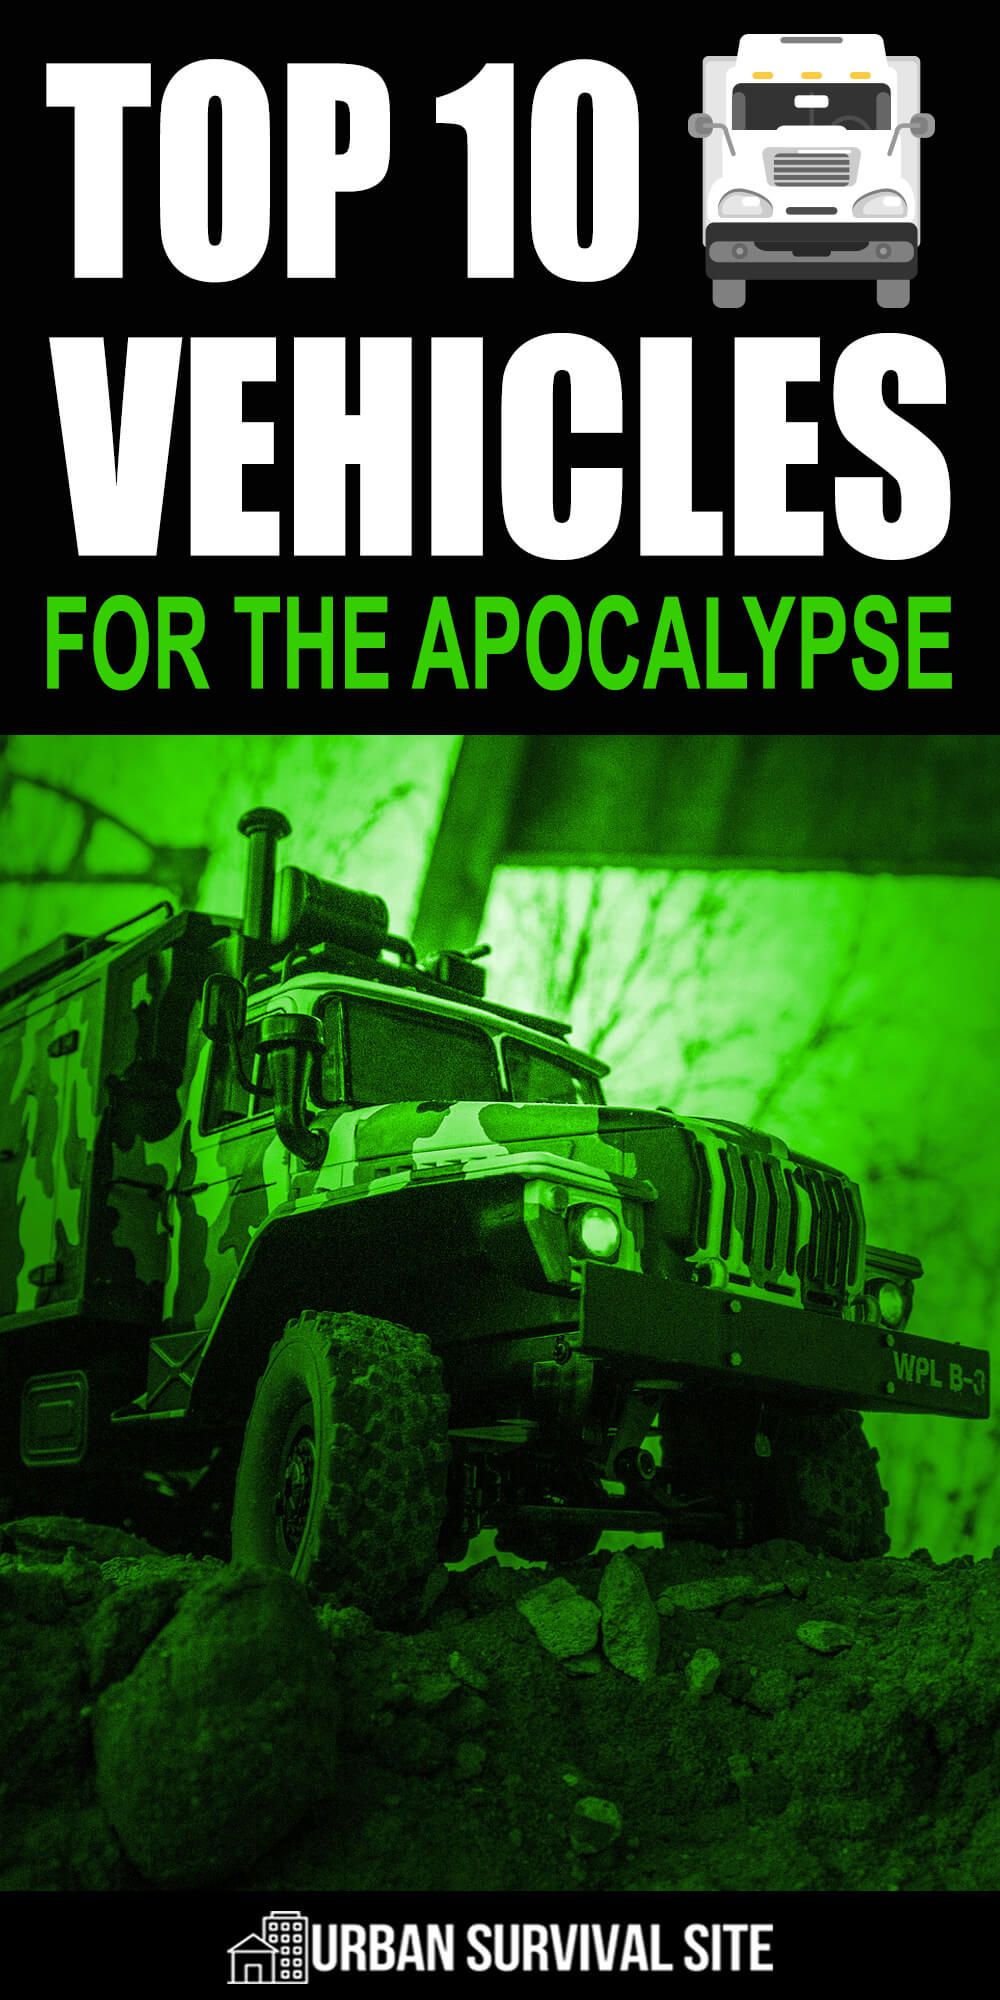 Top 10 Vehicles for the Apocalypse